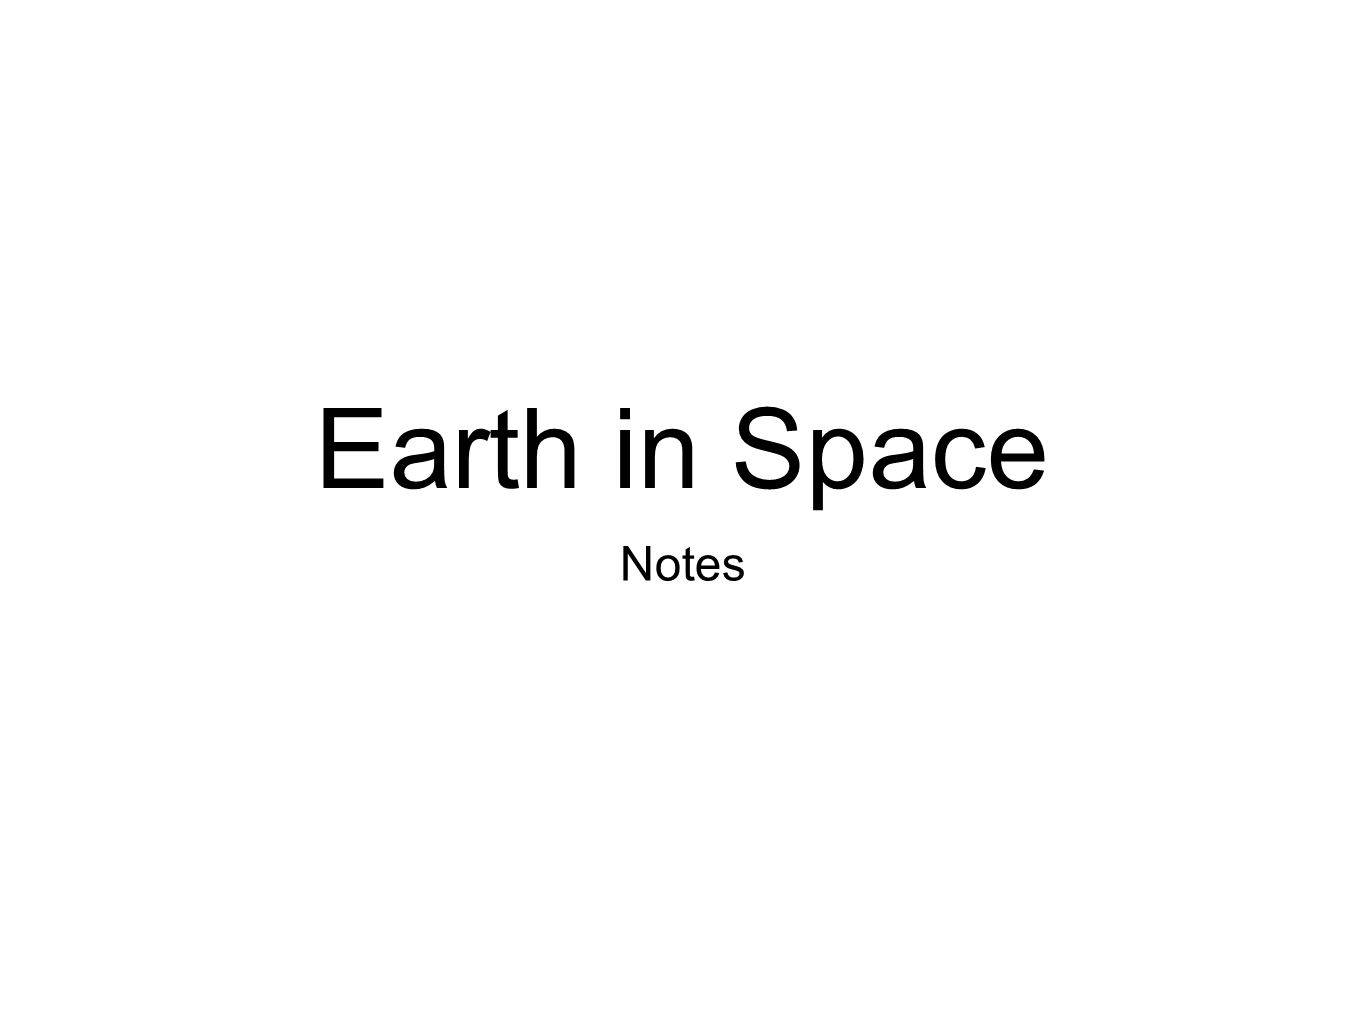 Earth in Space Notes